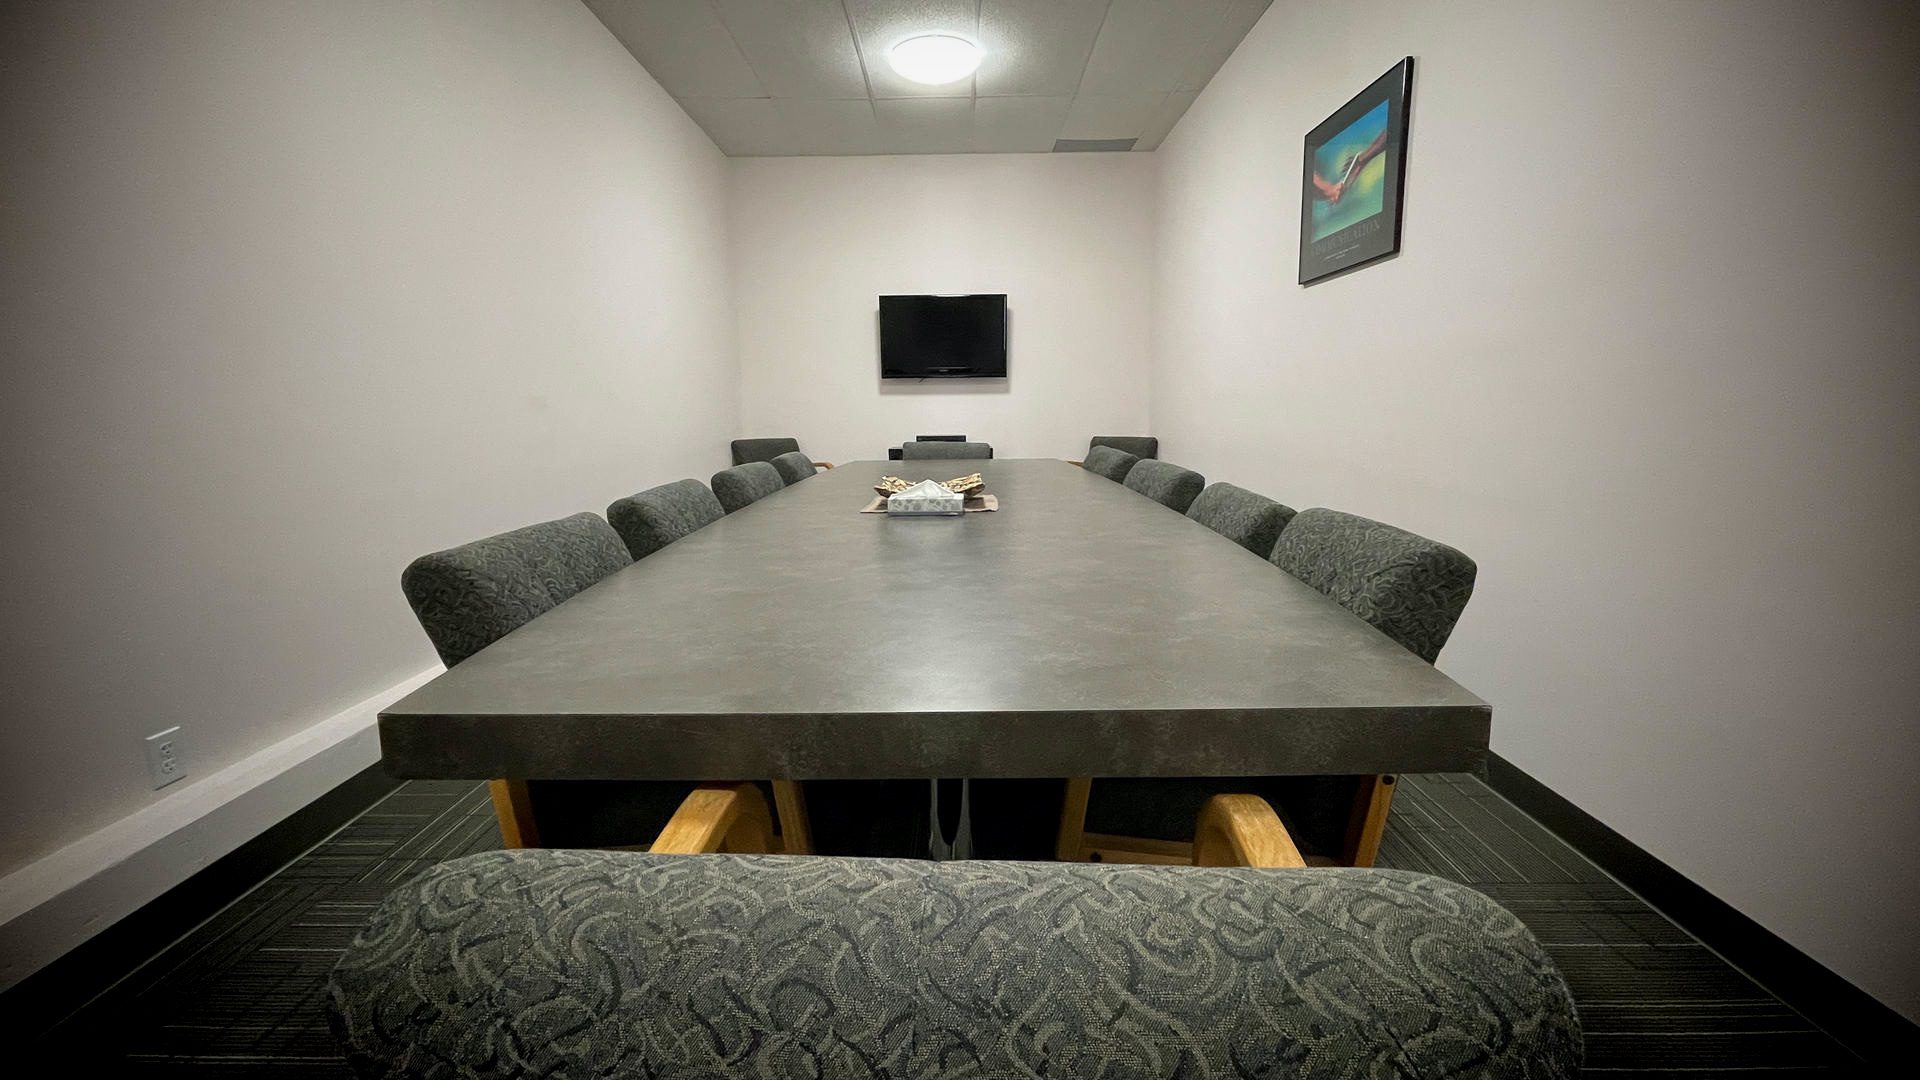 A board room table looking from the head of the table down the middle to a wide screen tv on the wall.